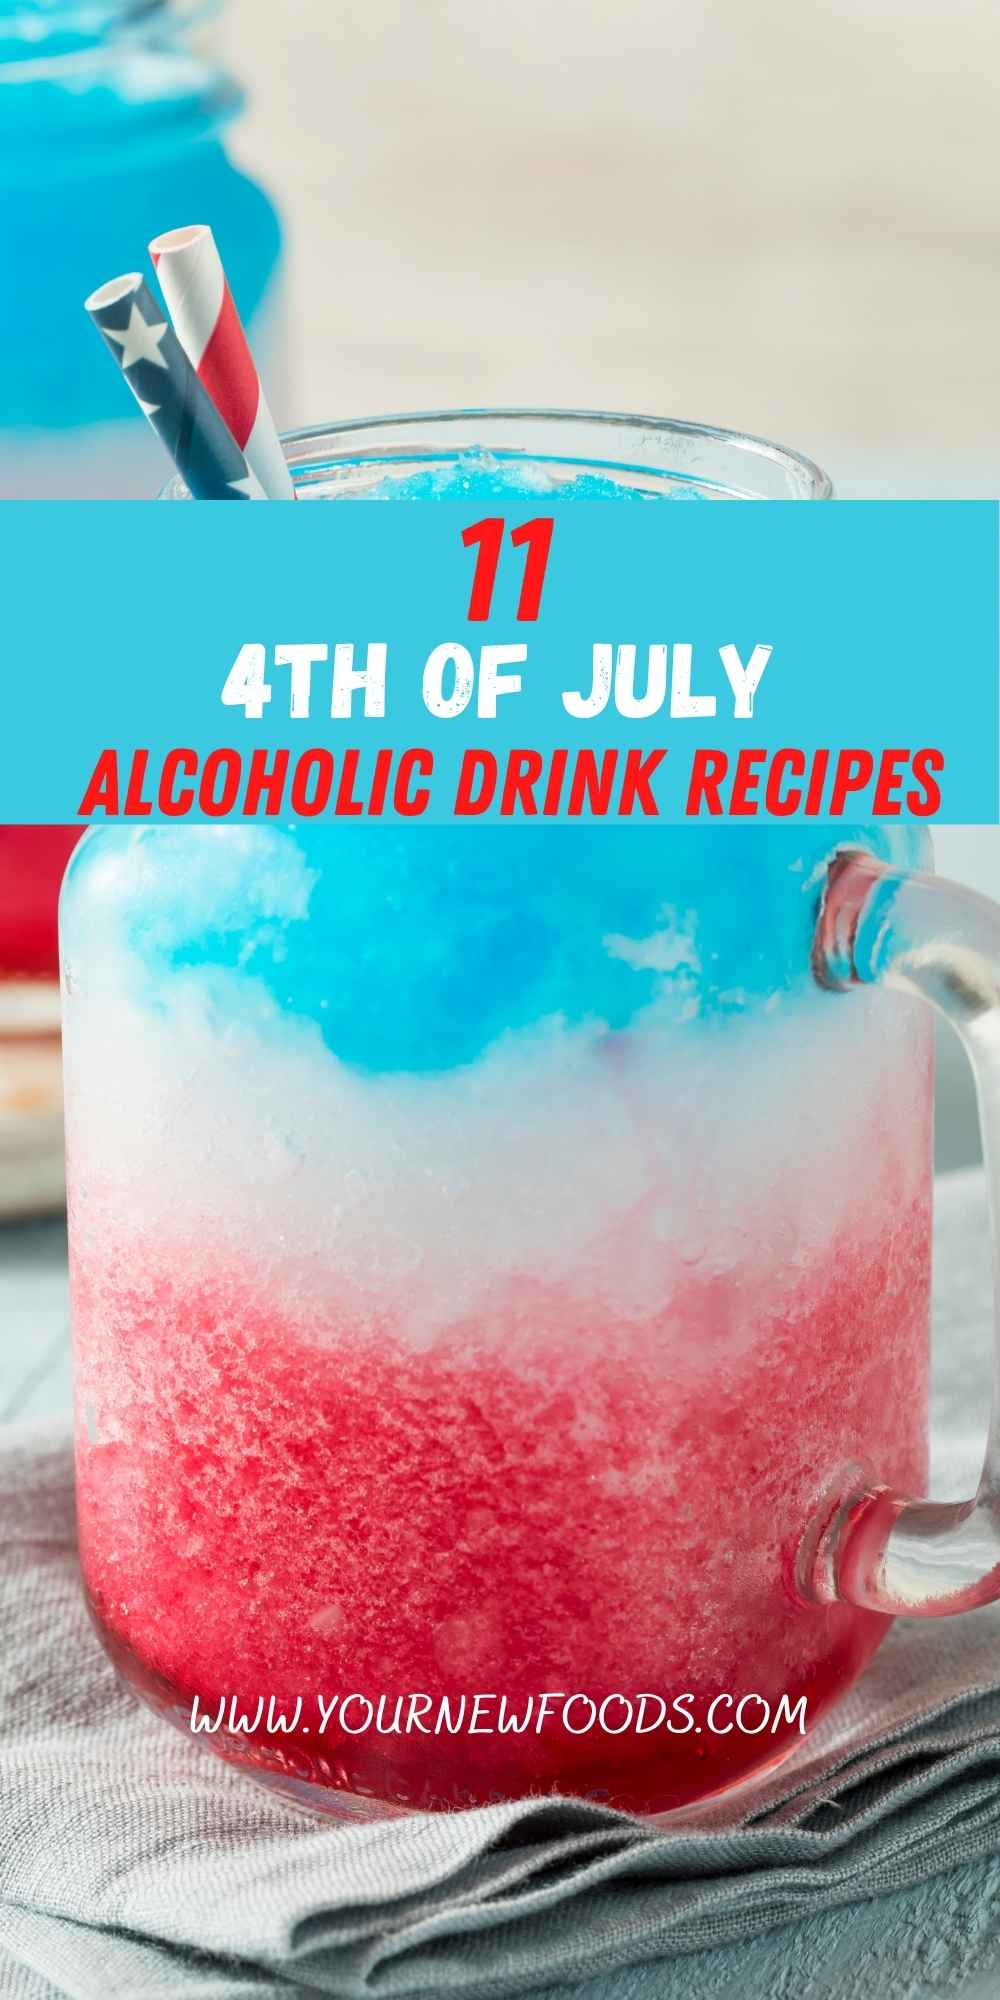 4th of July Drinks Alcoholic Recipe